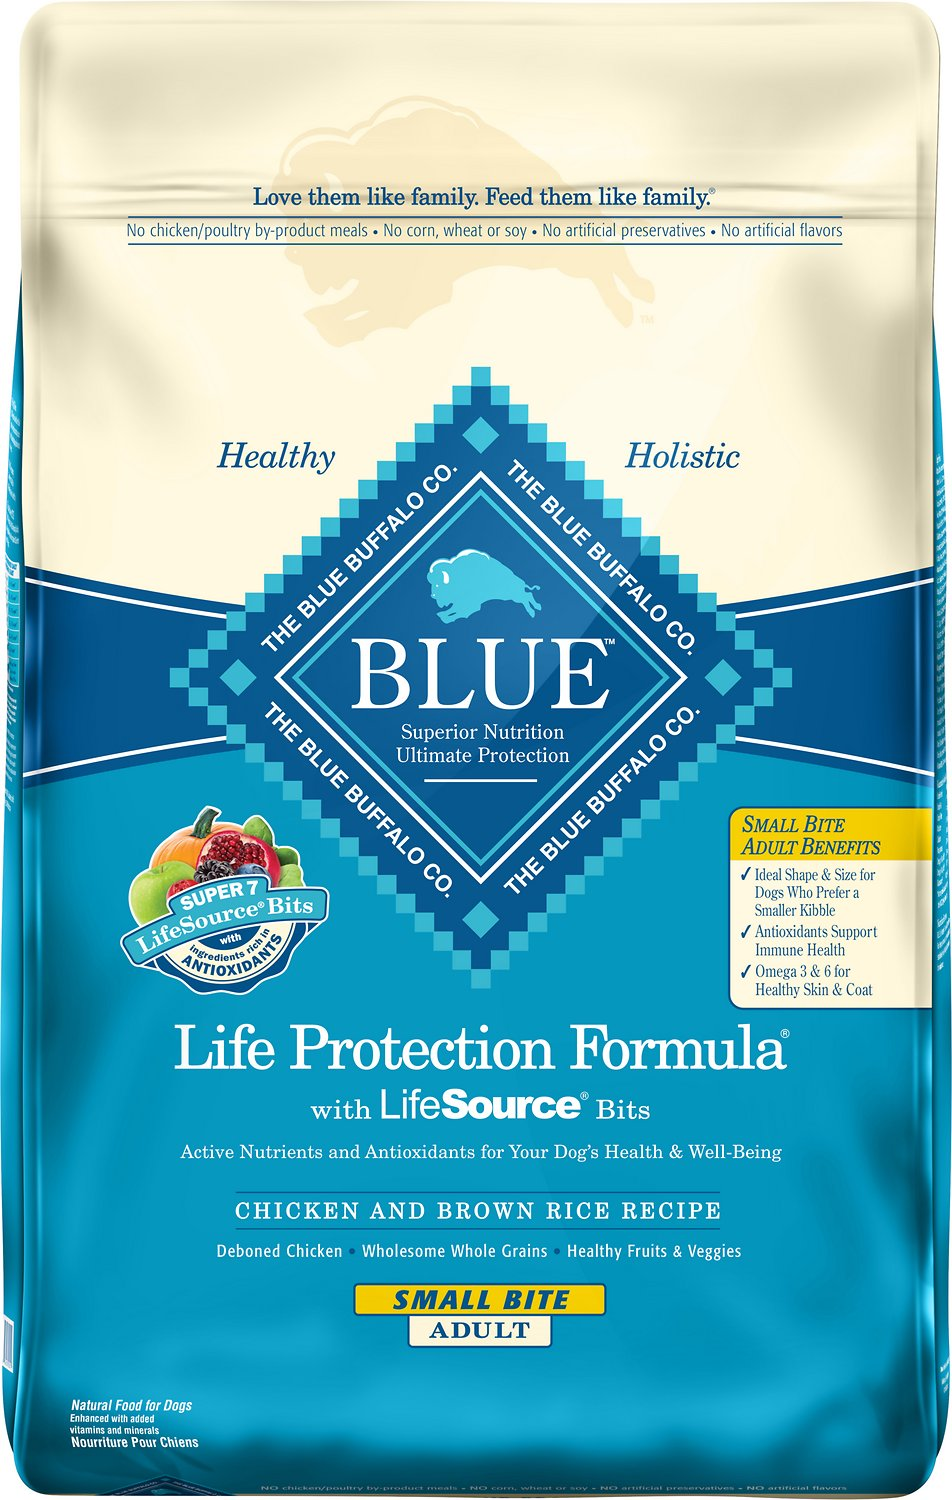 Blue Buffalo Life Protection Formula Small Bite Adult Chicken & Brown Rice Recipe Dry Dog Food Image